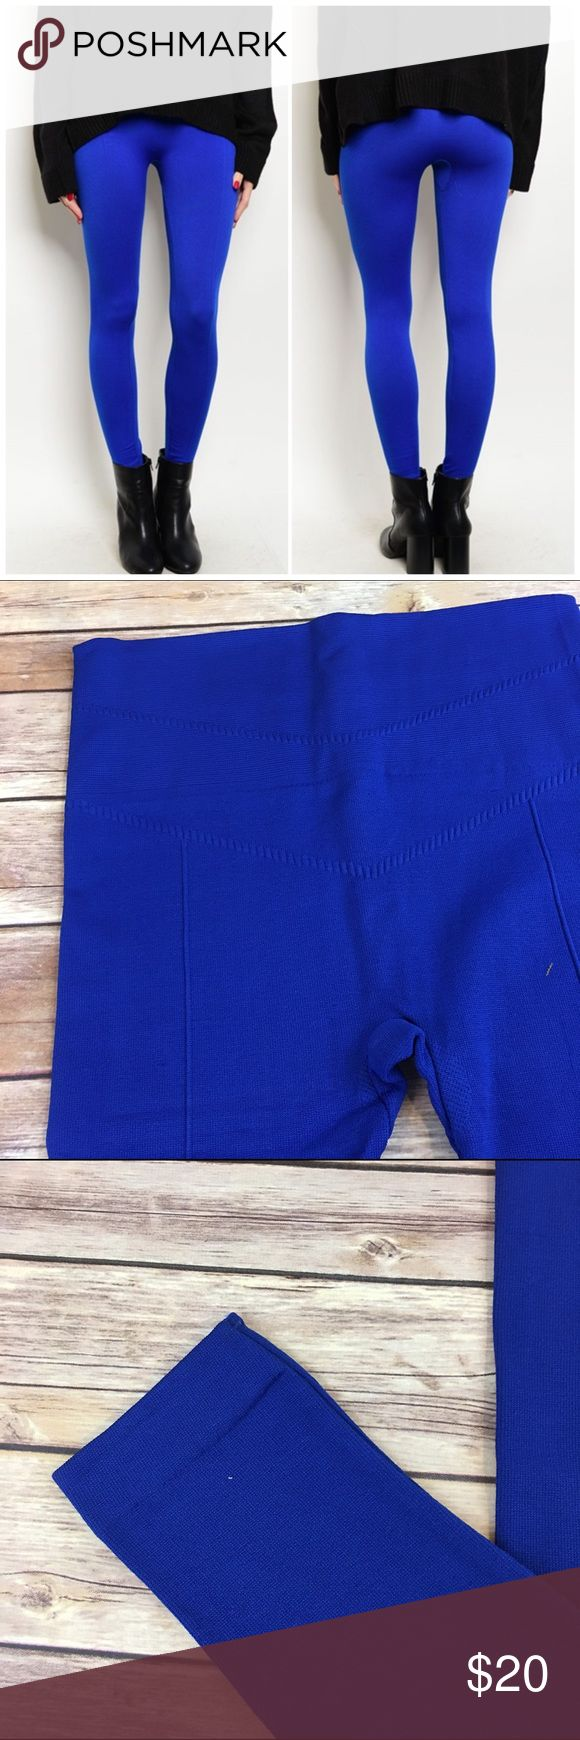 "Royal Blue Fleece Lined Leggings Royal Blue Fleece Lined Leggings. One size fits most. Waist 28""/ inseam 24"" unstretched. Made of poly/ spandex blend Bchic Pants Leggings"